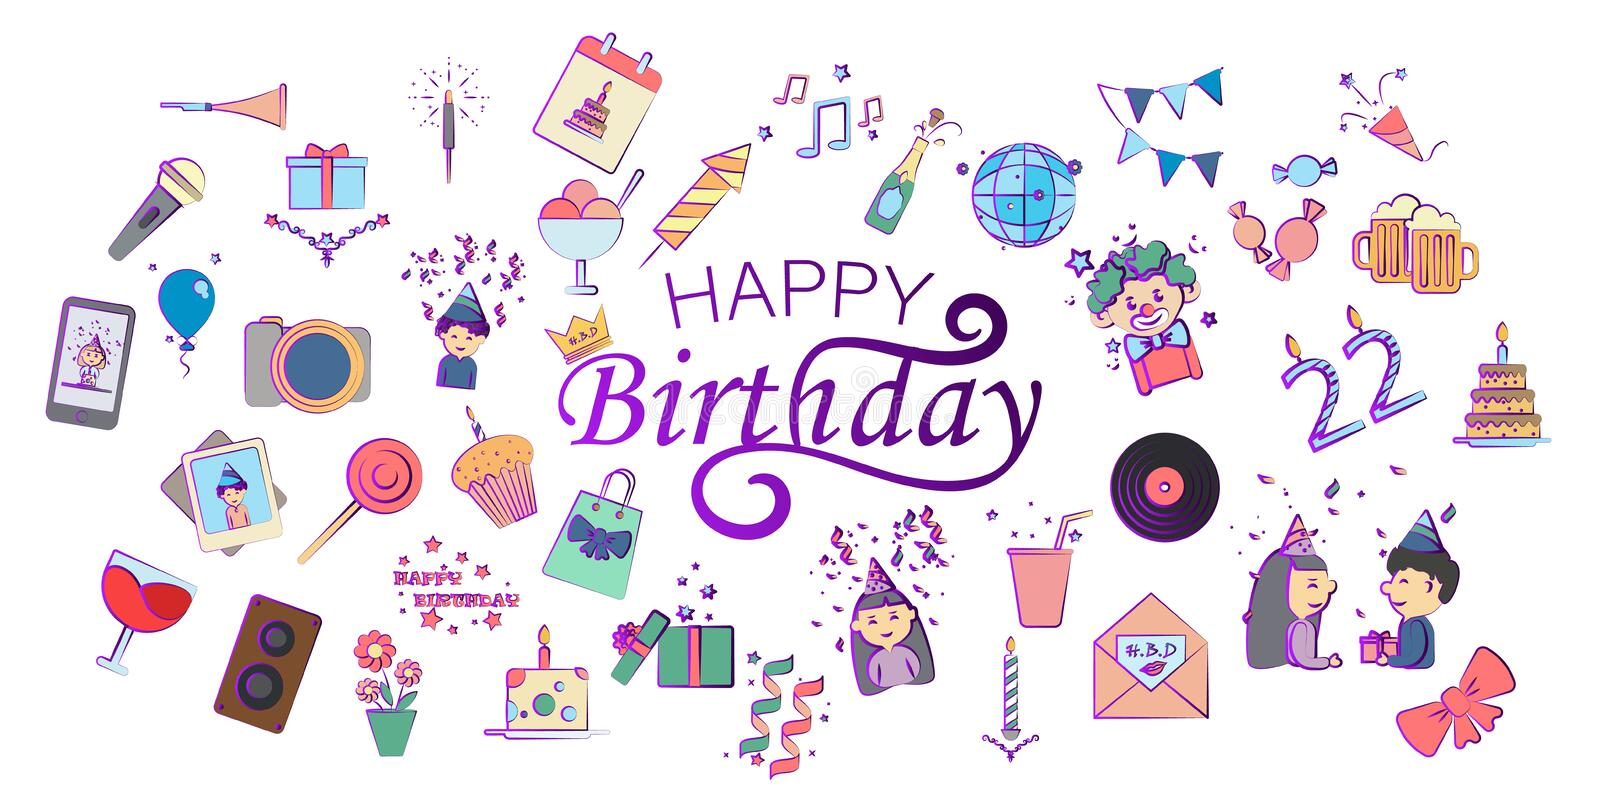 Happy Birthday Card, hand drawn design elements, gifts, wallpapers, web template, card, invitation stock illustration